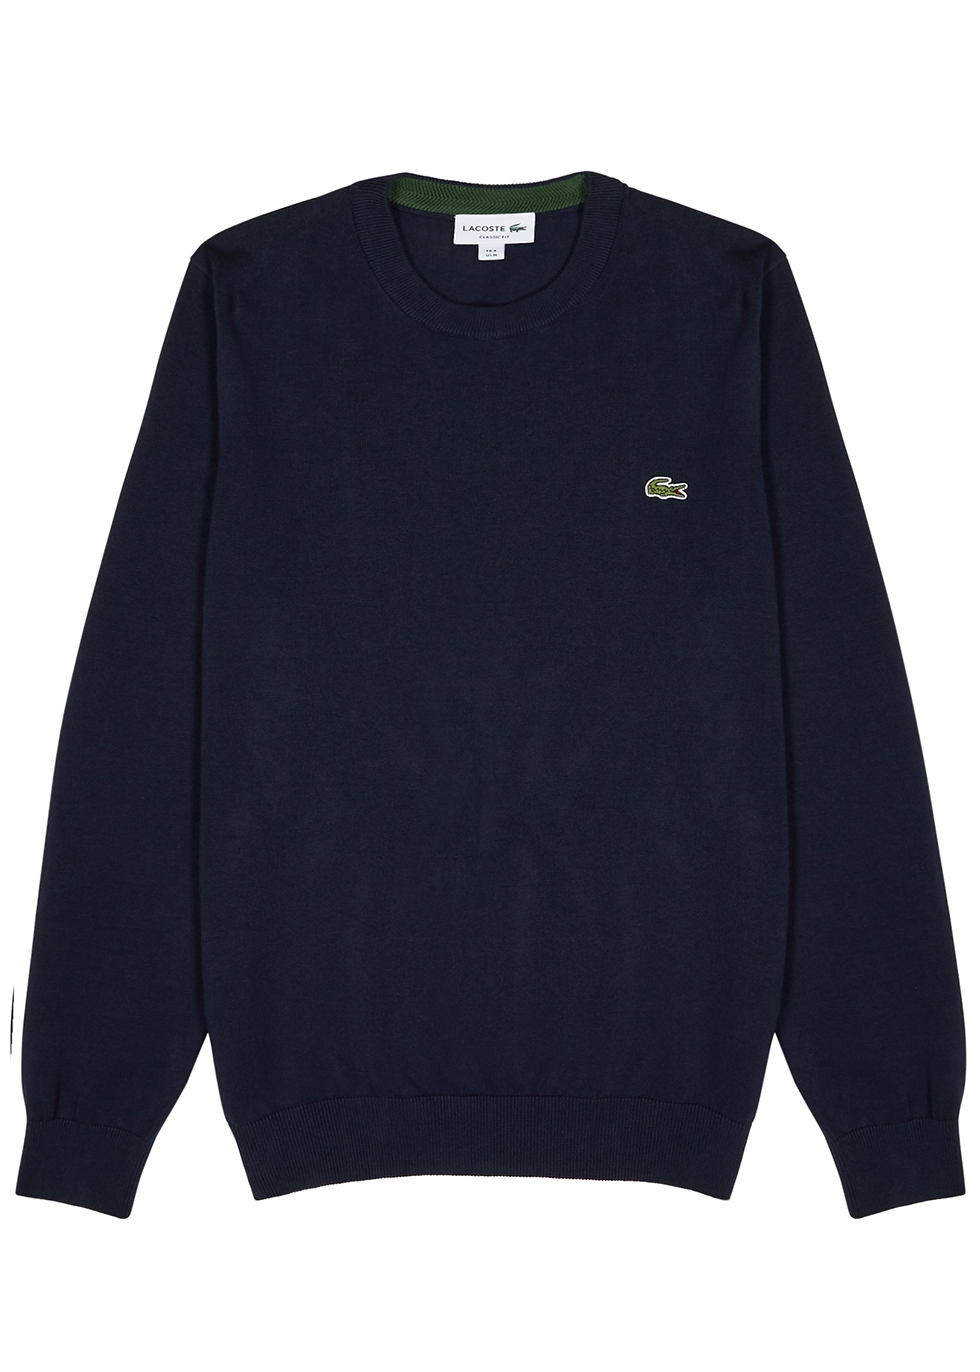 Navy knitted cotton jumper